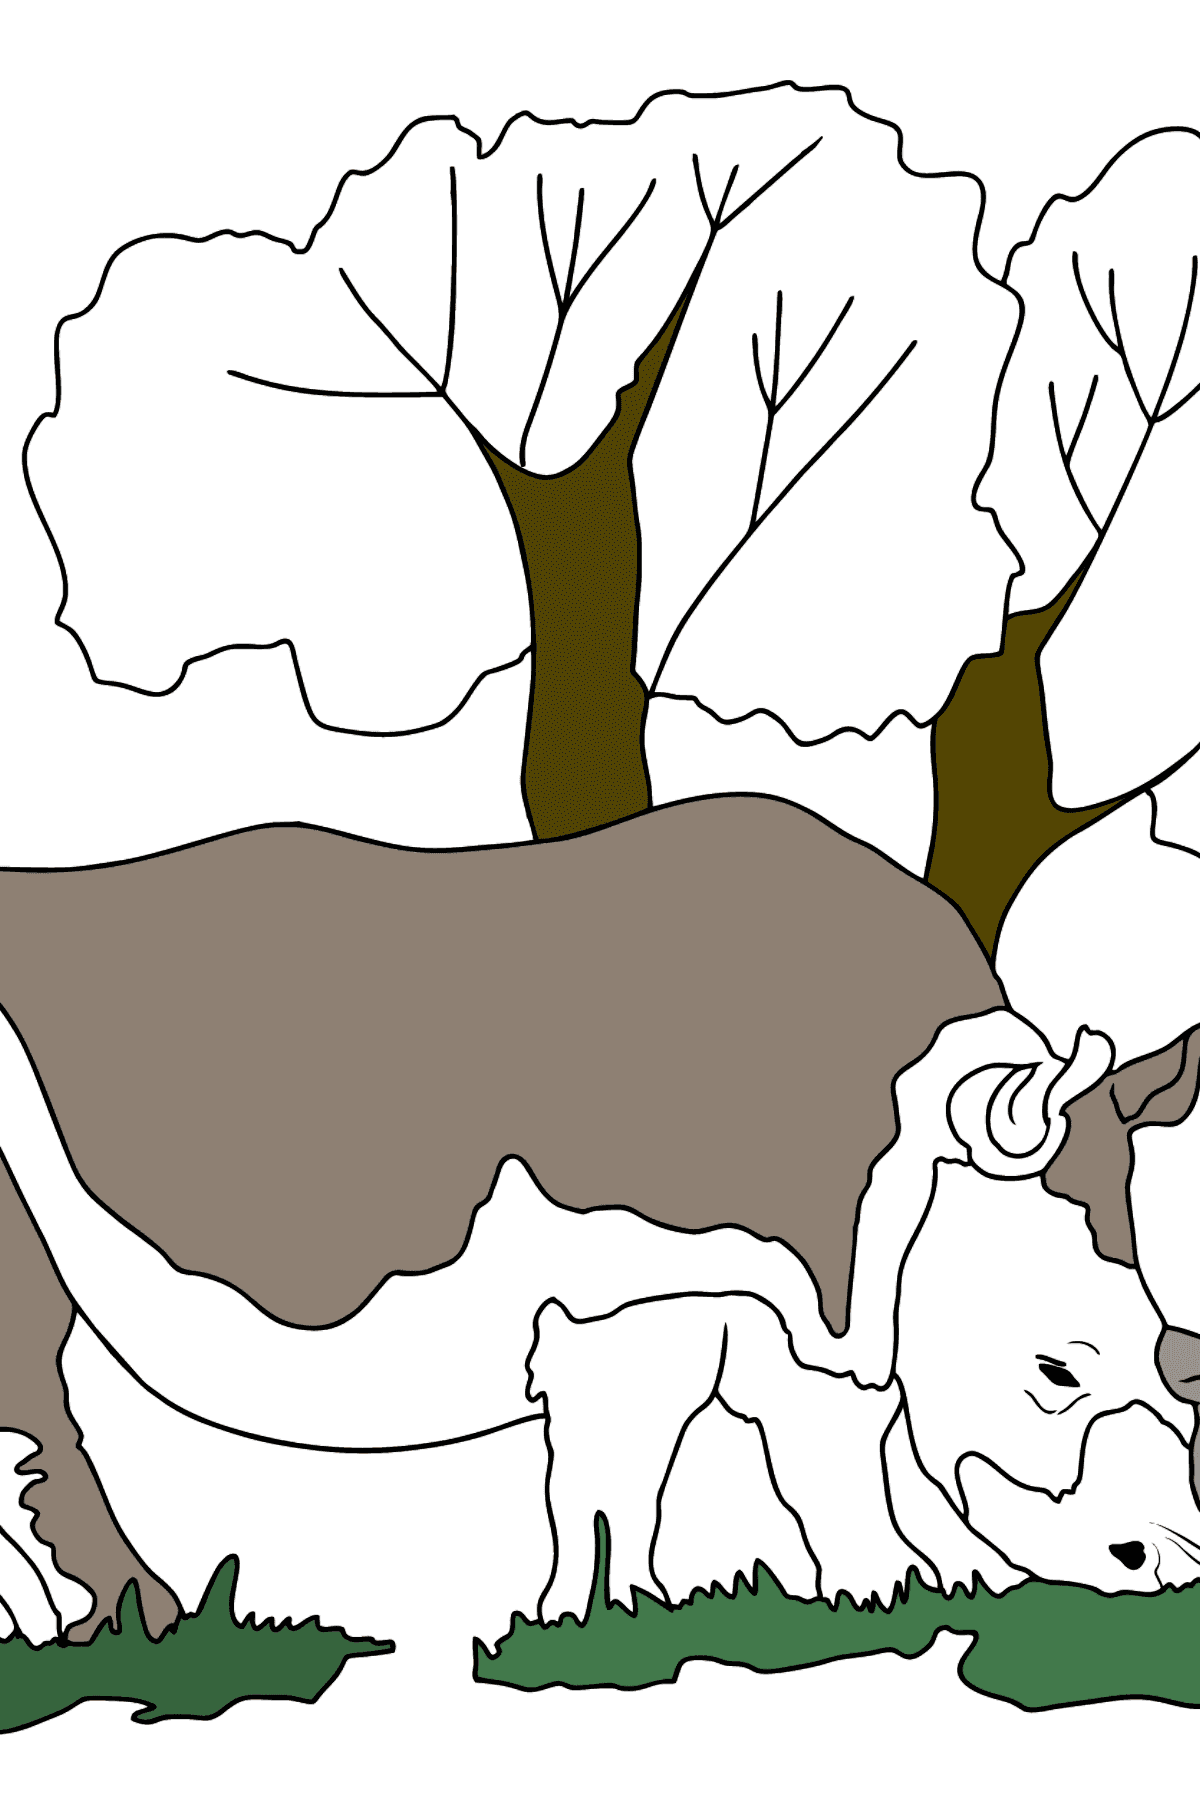 Coloring Page - A Massive Rhino - Coloring Pages for Kids